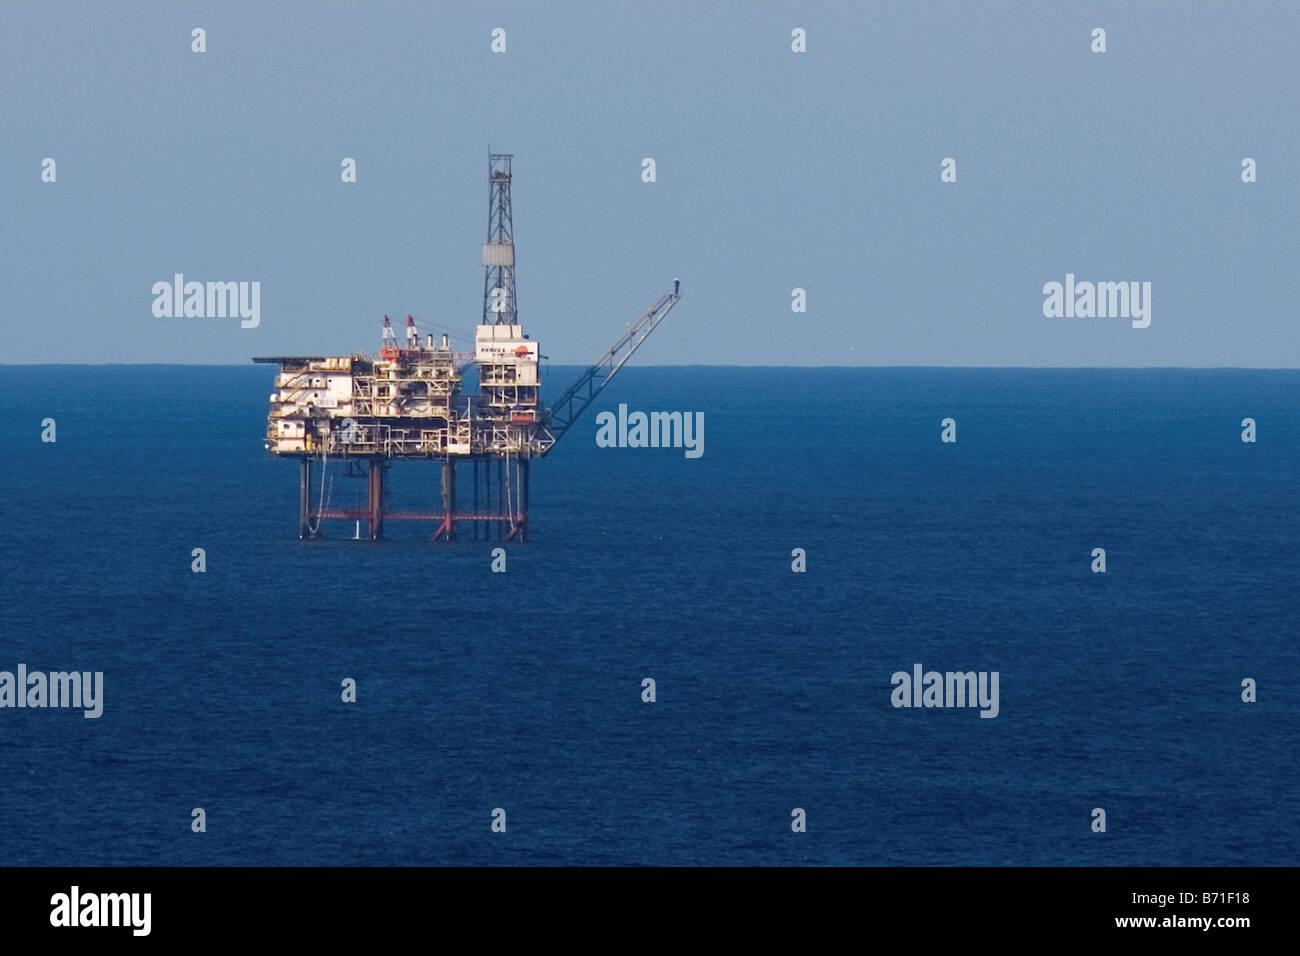 Sea gas platform in the Gulf of Biscay, Spain, Cantabric sea, energy, petrol - Stock Image